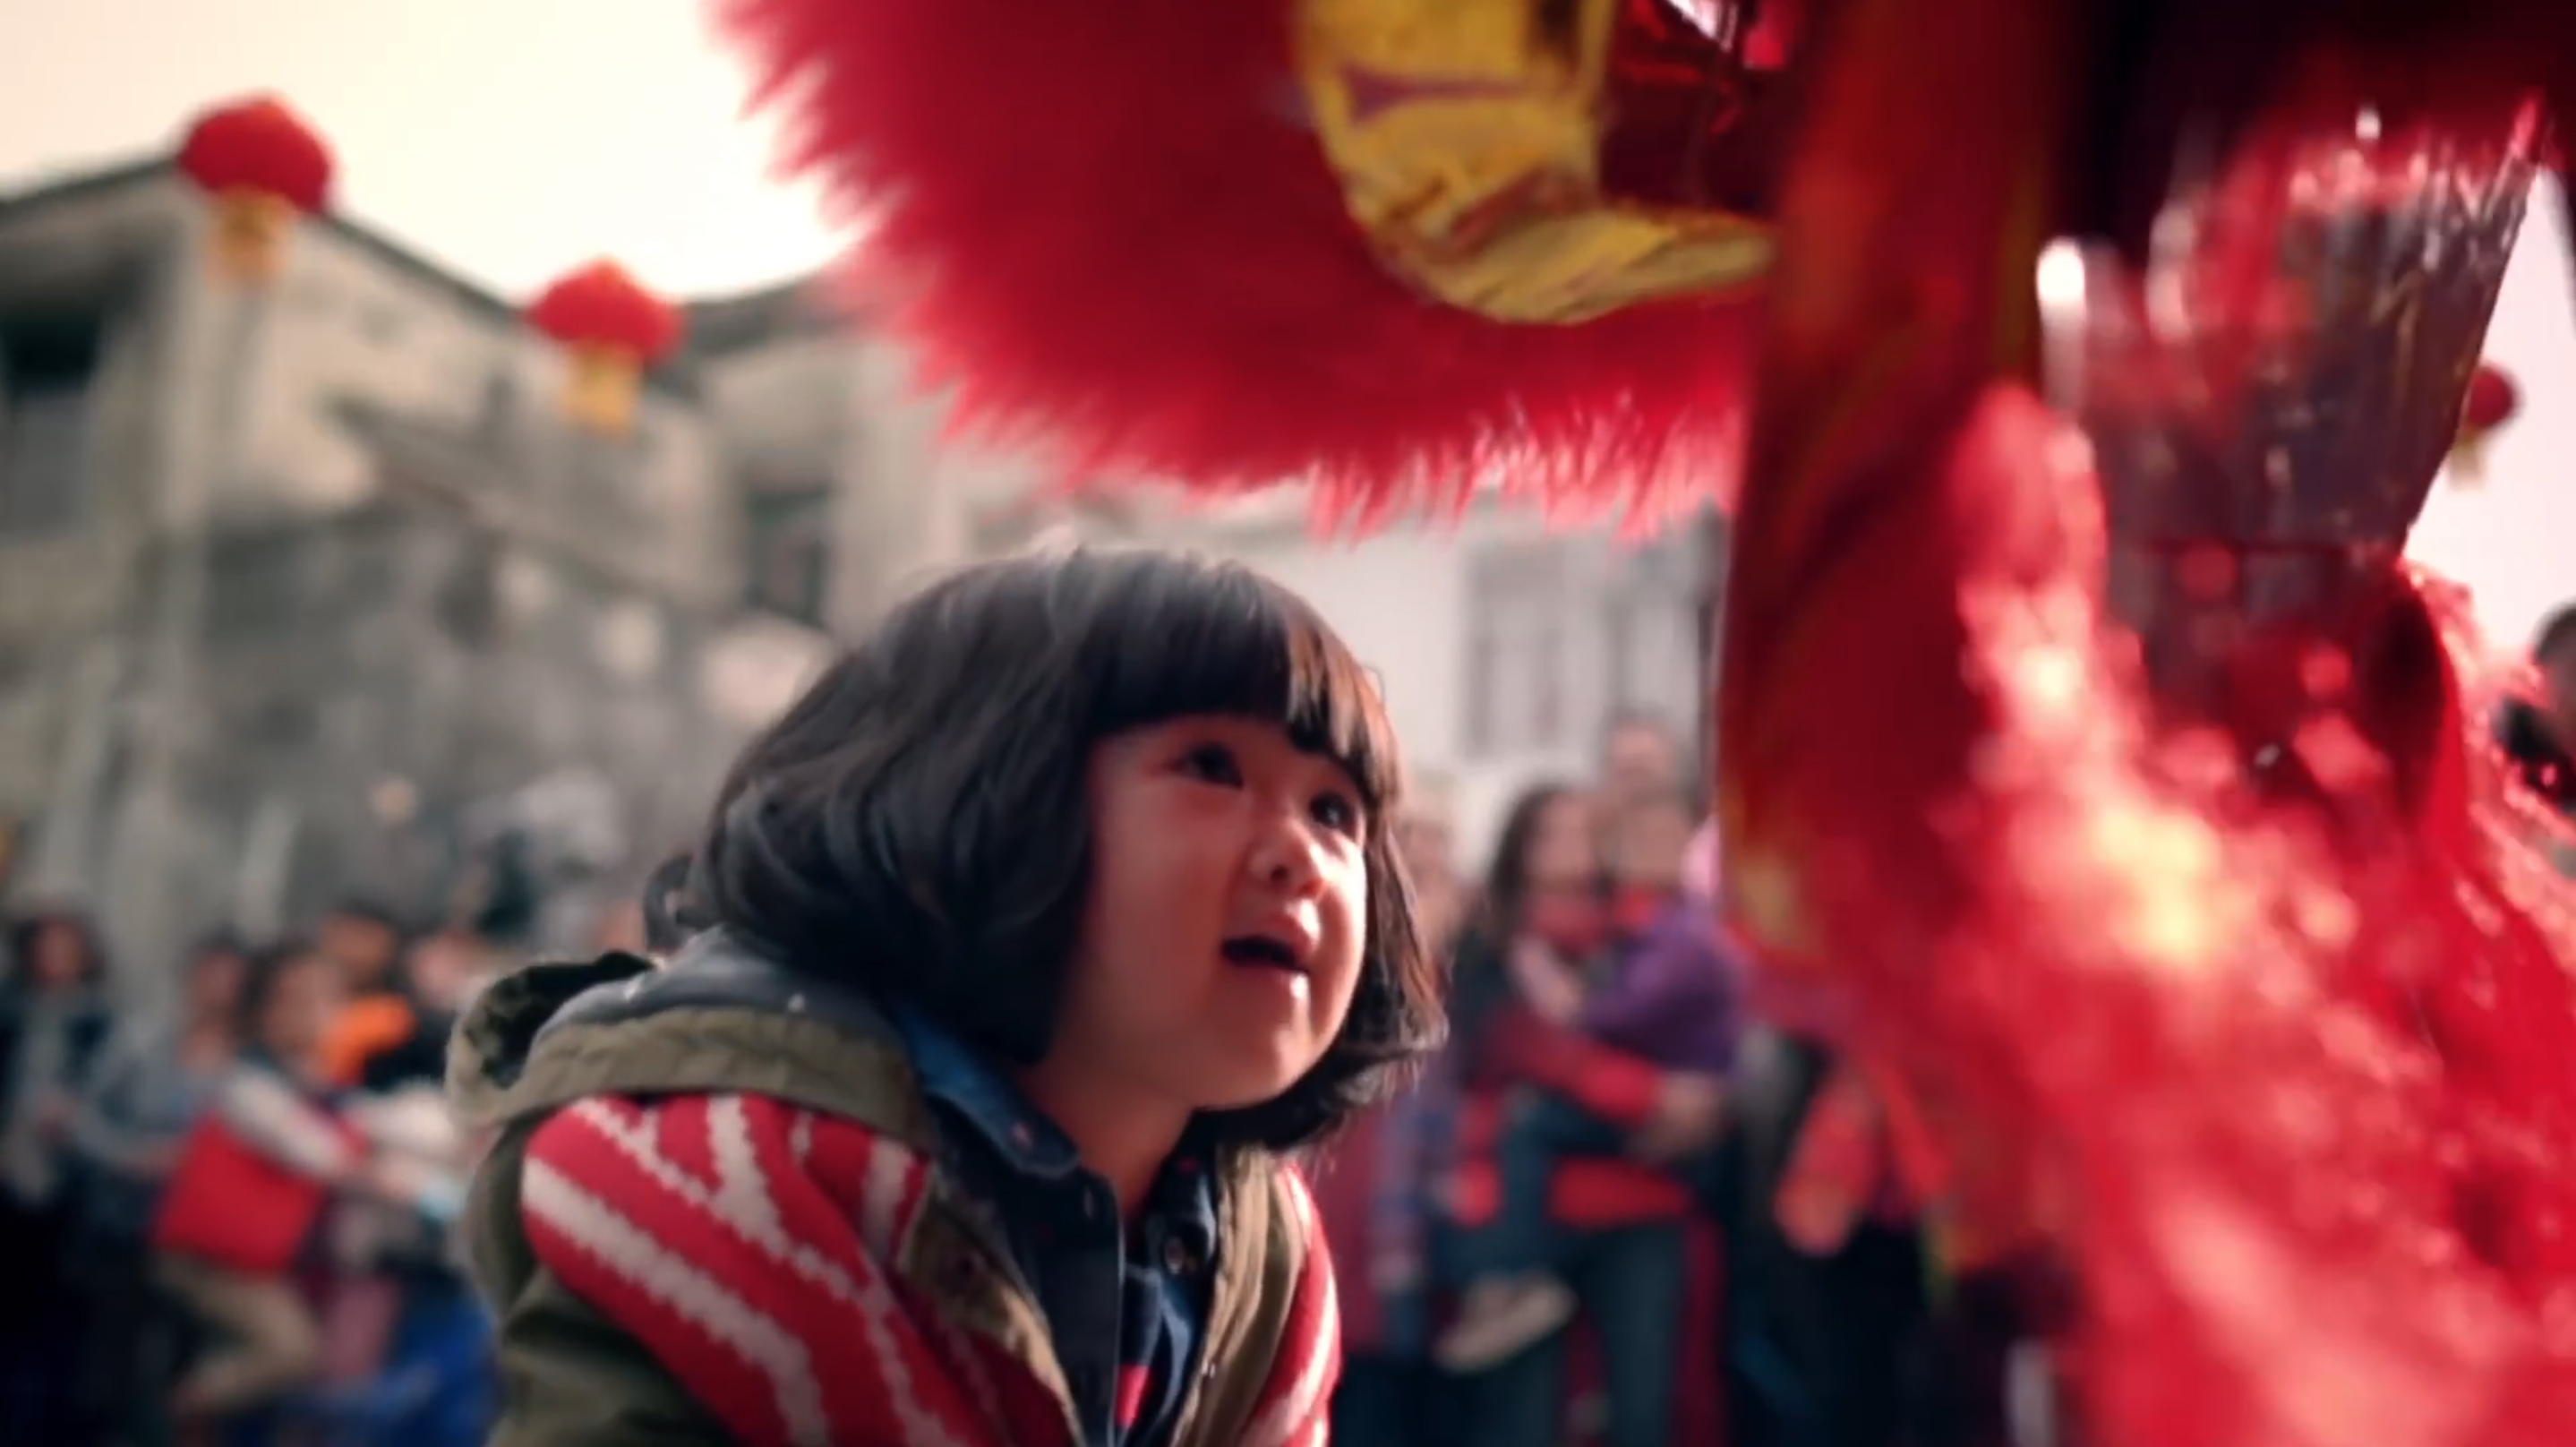 CNY through children's eyes